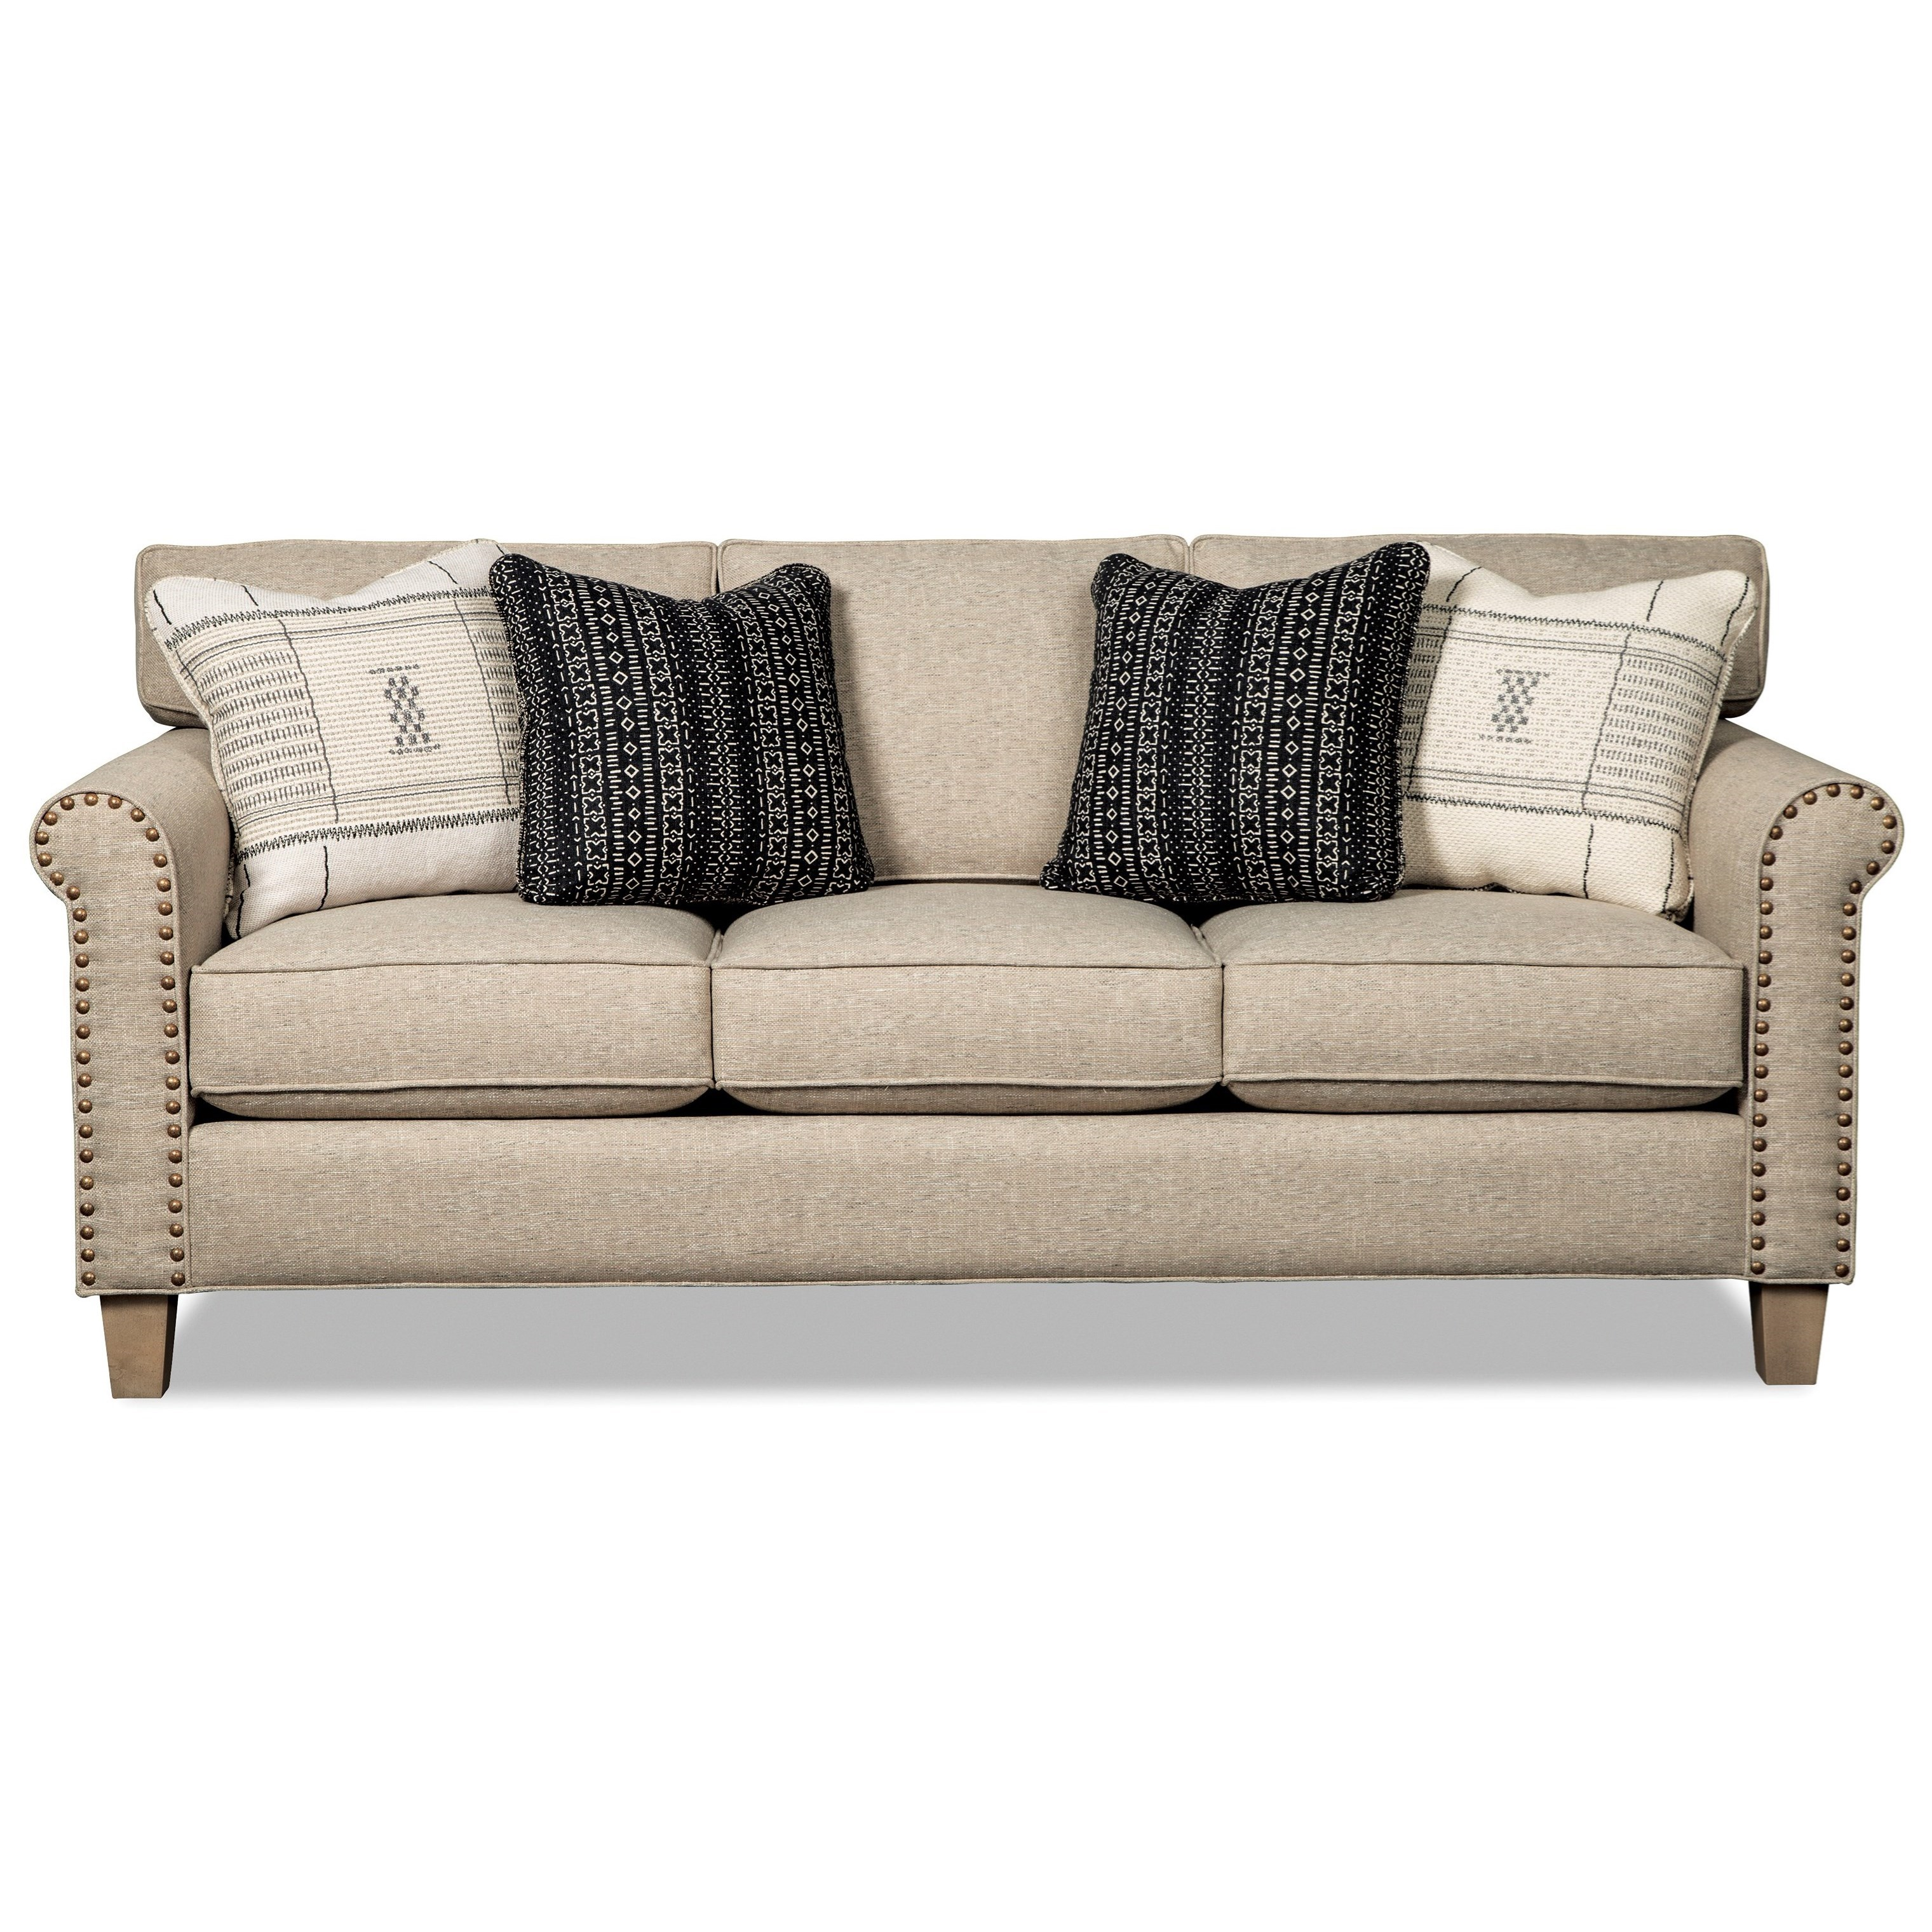 778850 Sofa by Craftmaster at Home Collections Furniture